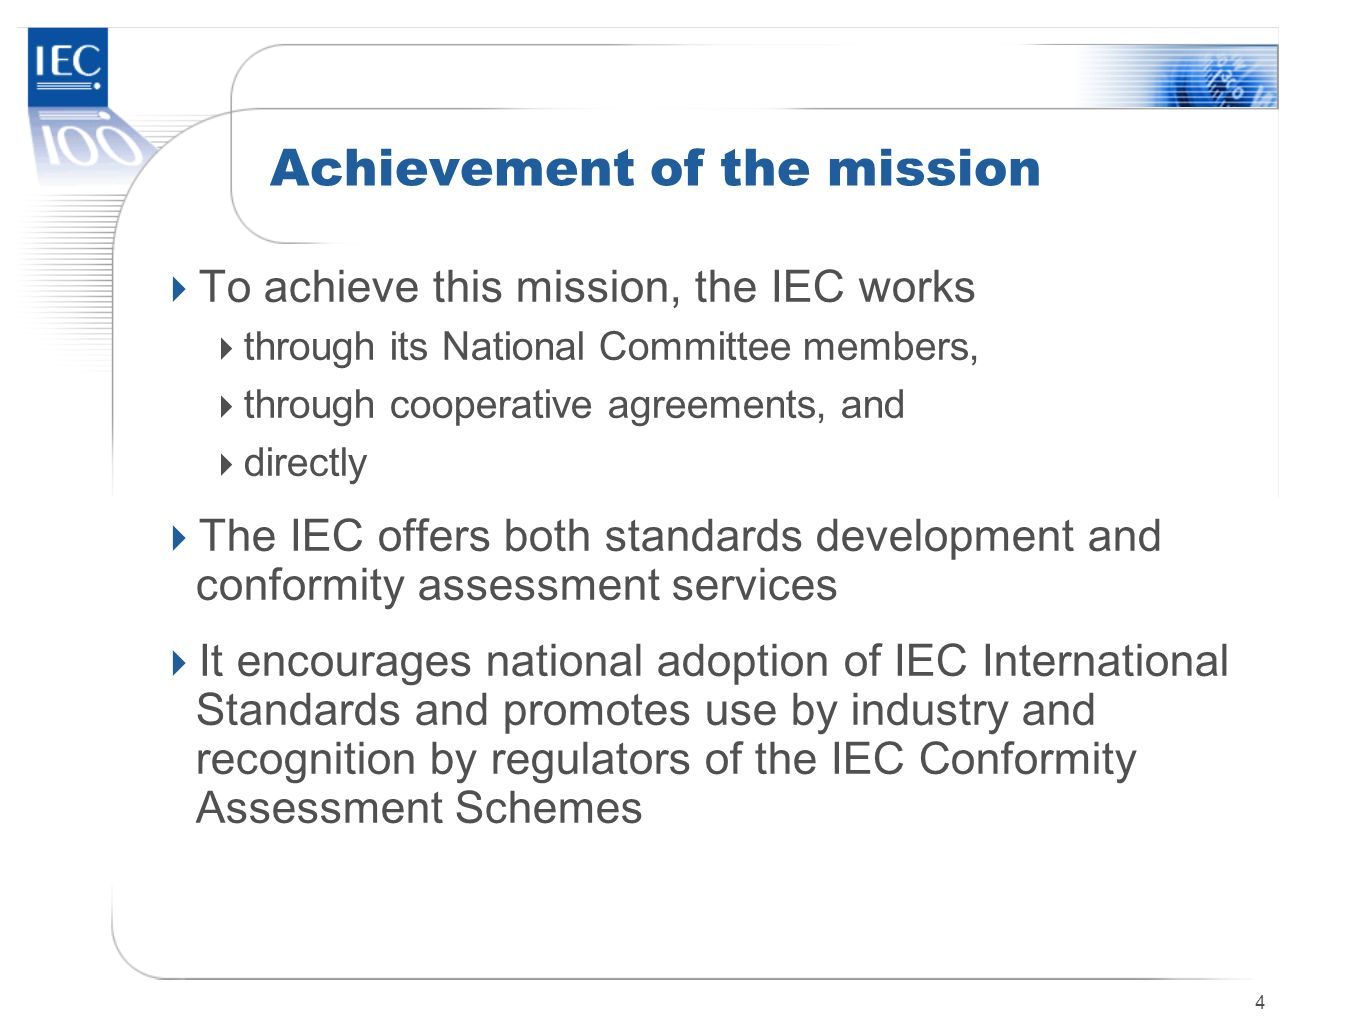 5 IEC organization structure IEC COUNCIL National Committees IECEE COUNCIL BOARD CONFORMITY ASSESSMENT BOARD Management of Certification Management Advisory Committees EXECUTIVE COMMITTEE (IEC Officers) Central Office (The Executive) Industry Sector Boards Technical Advisory Committees Technical Committees STANDARDIZATION MANAGEMENT BOARD Management of International Consensus Standards Work IECEx IECQ